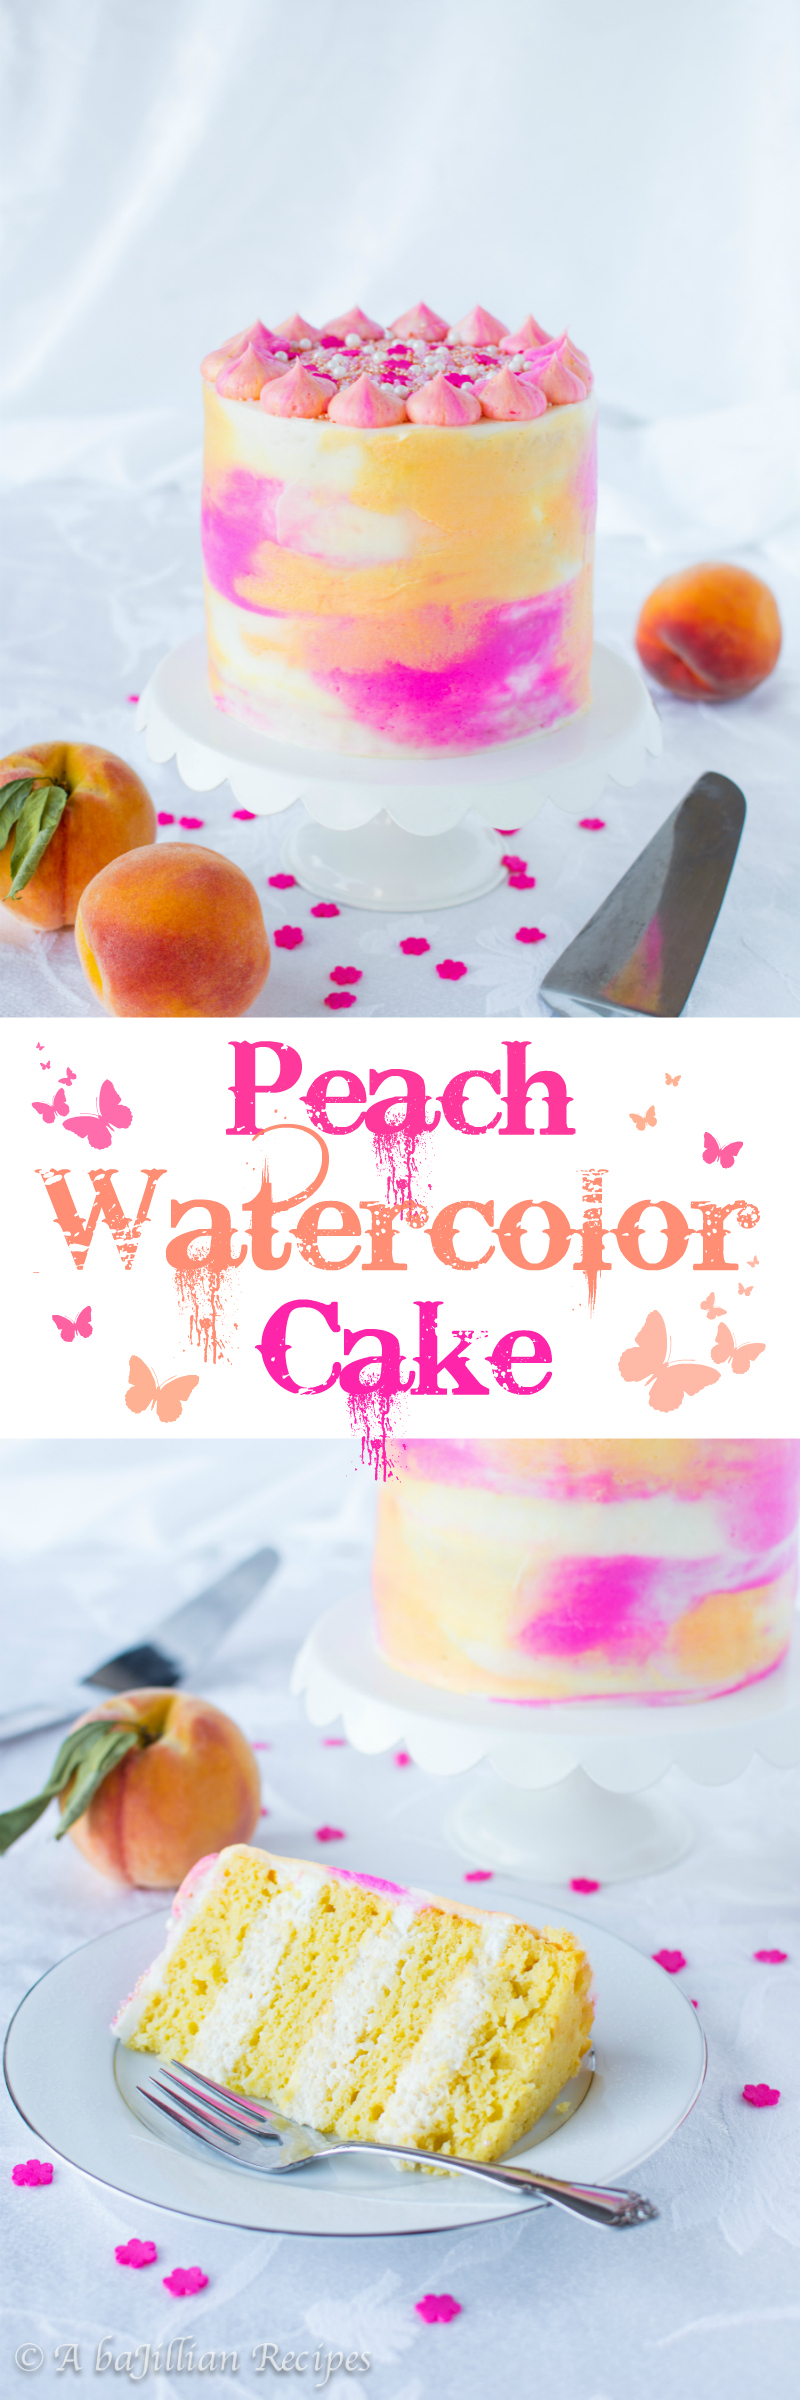 Peach Watercolor Cake (collage)